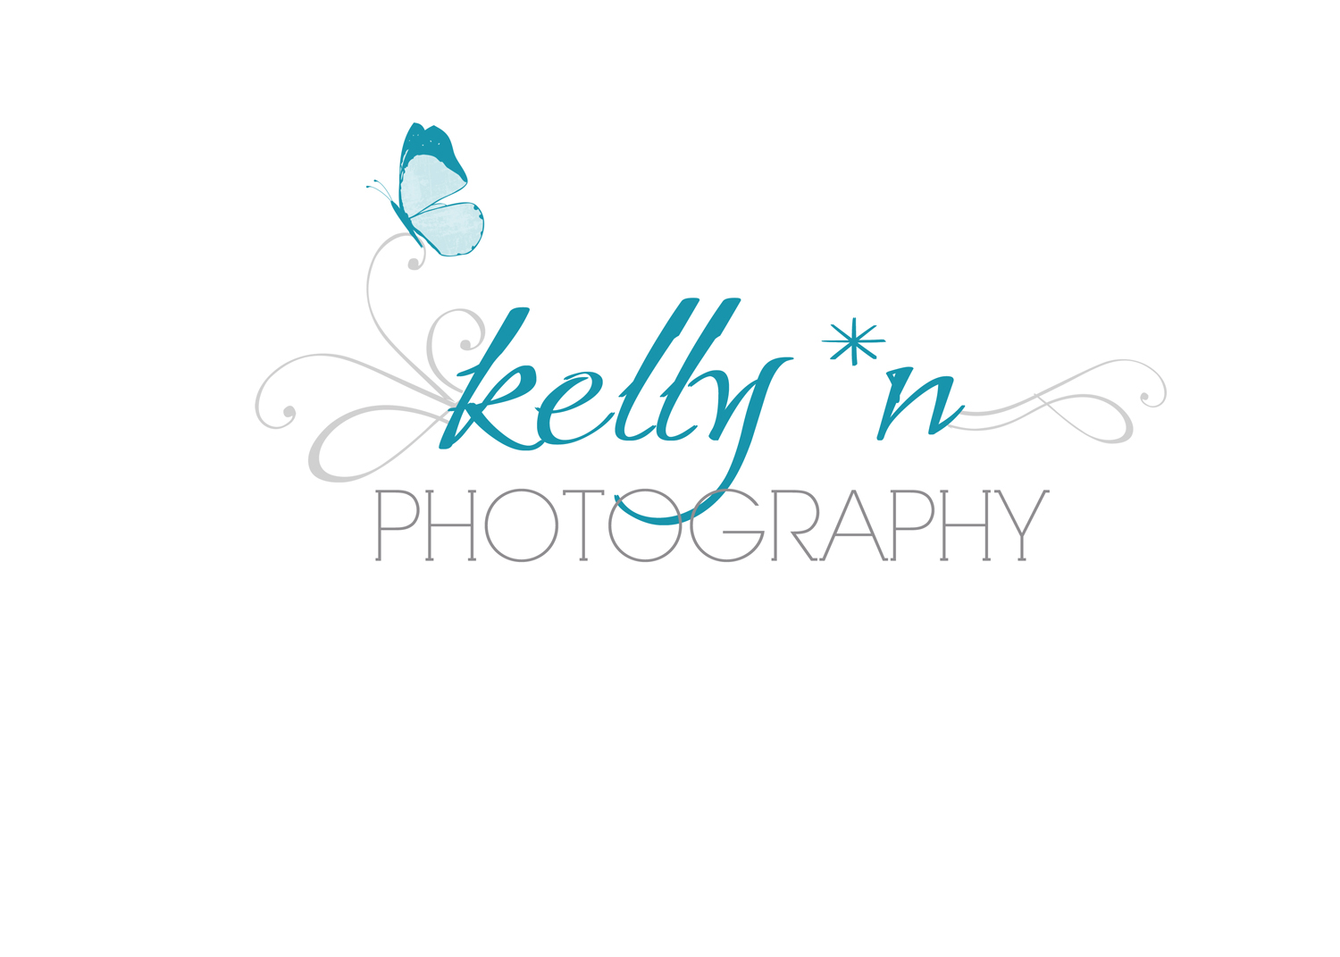 Kelly*N Photography